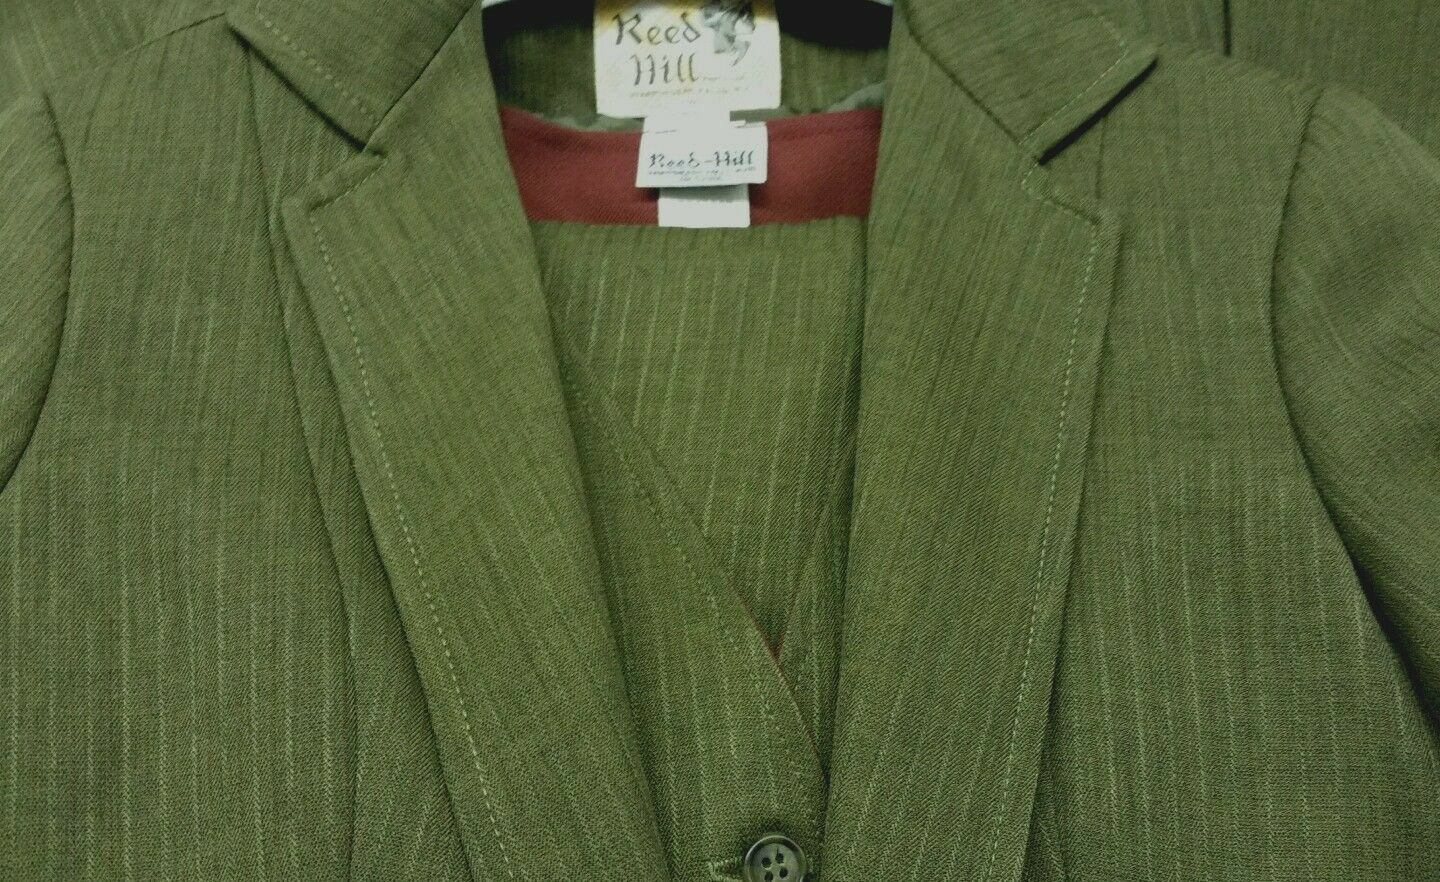 Reed Hill Ladies 3 piece Saddleseat  suit Olive Green Pin polyester size 8 - USA  latest styles